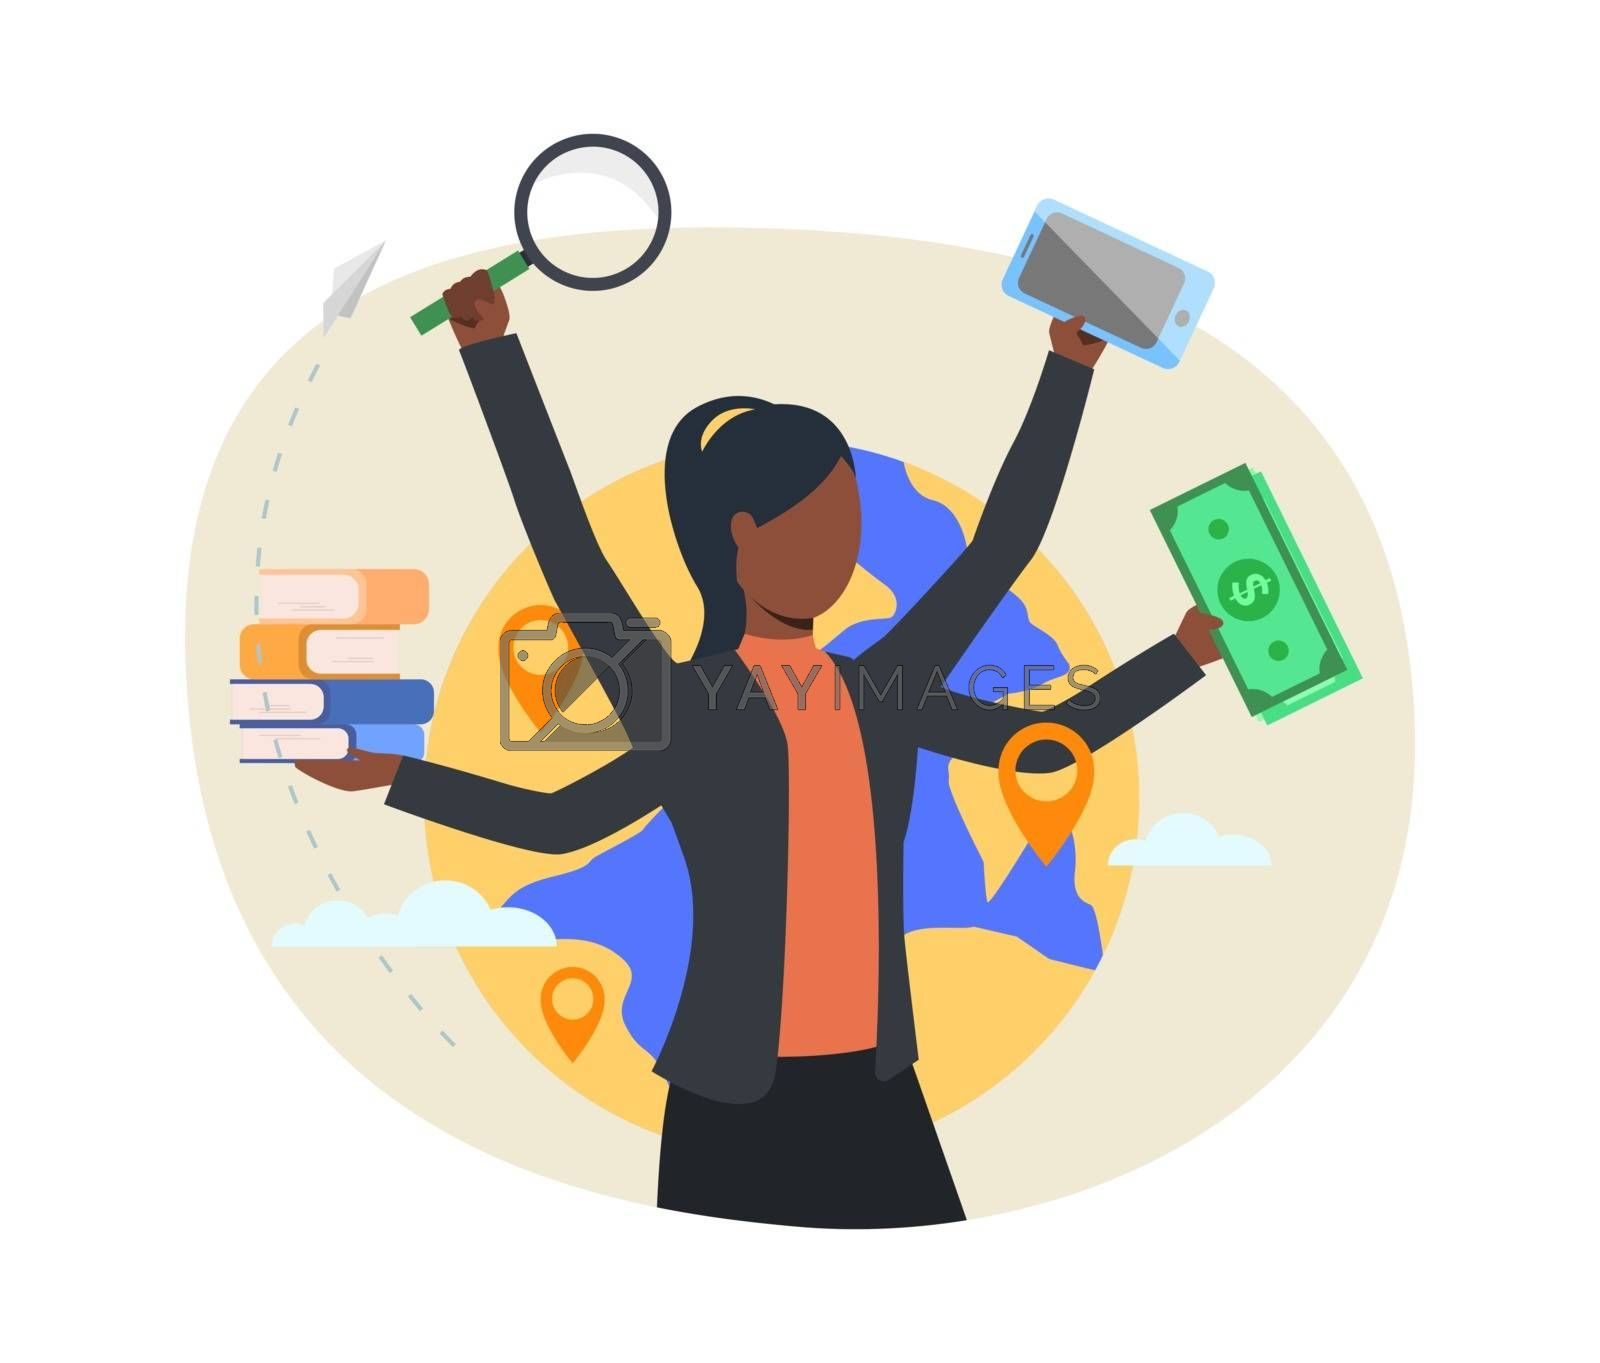 Busy professional webpage. Businesswoman holding money, books, magnifying glass, smartphone. Multitasking concept. Vector illustration for topics like business, lifestyle, stress